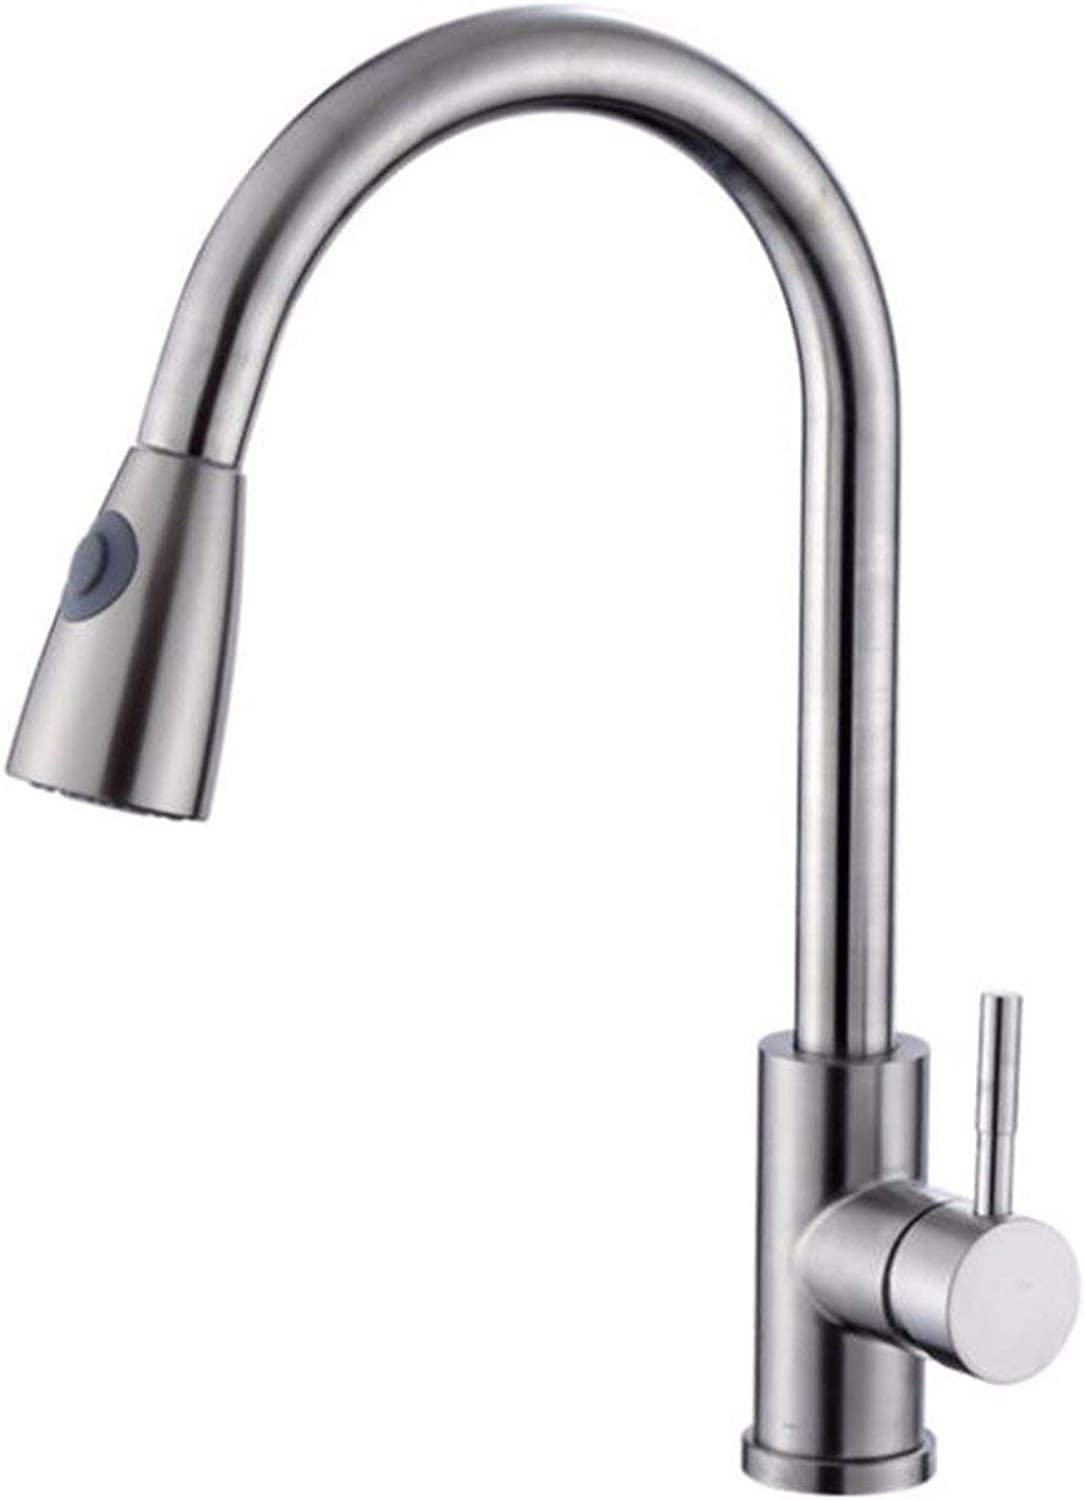 ZQG Faucet Water tap Taps Swivel Hoses Hot and Cold Retractable Pull Kitchen redating 304 Stainless Steel Household Sink Basin